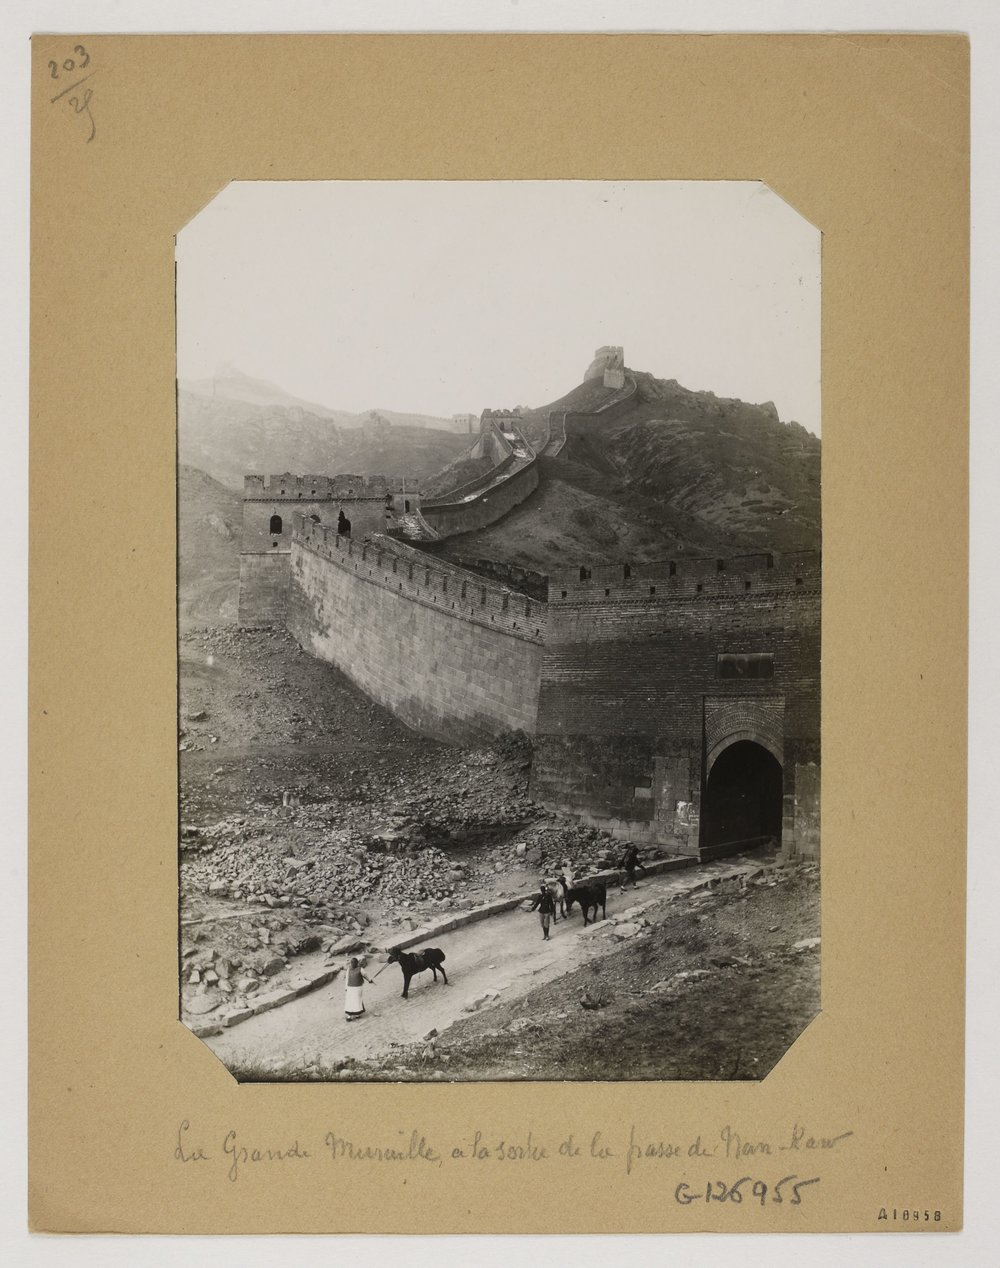 firmin-laribe-china-1904-1910-photography-of-china-5.jpg